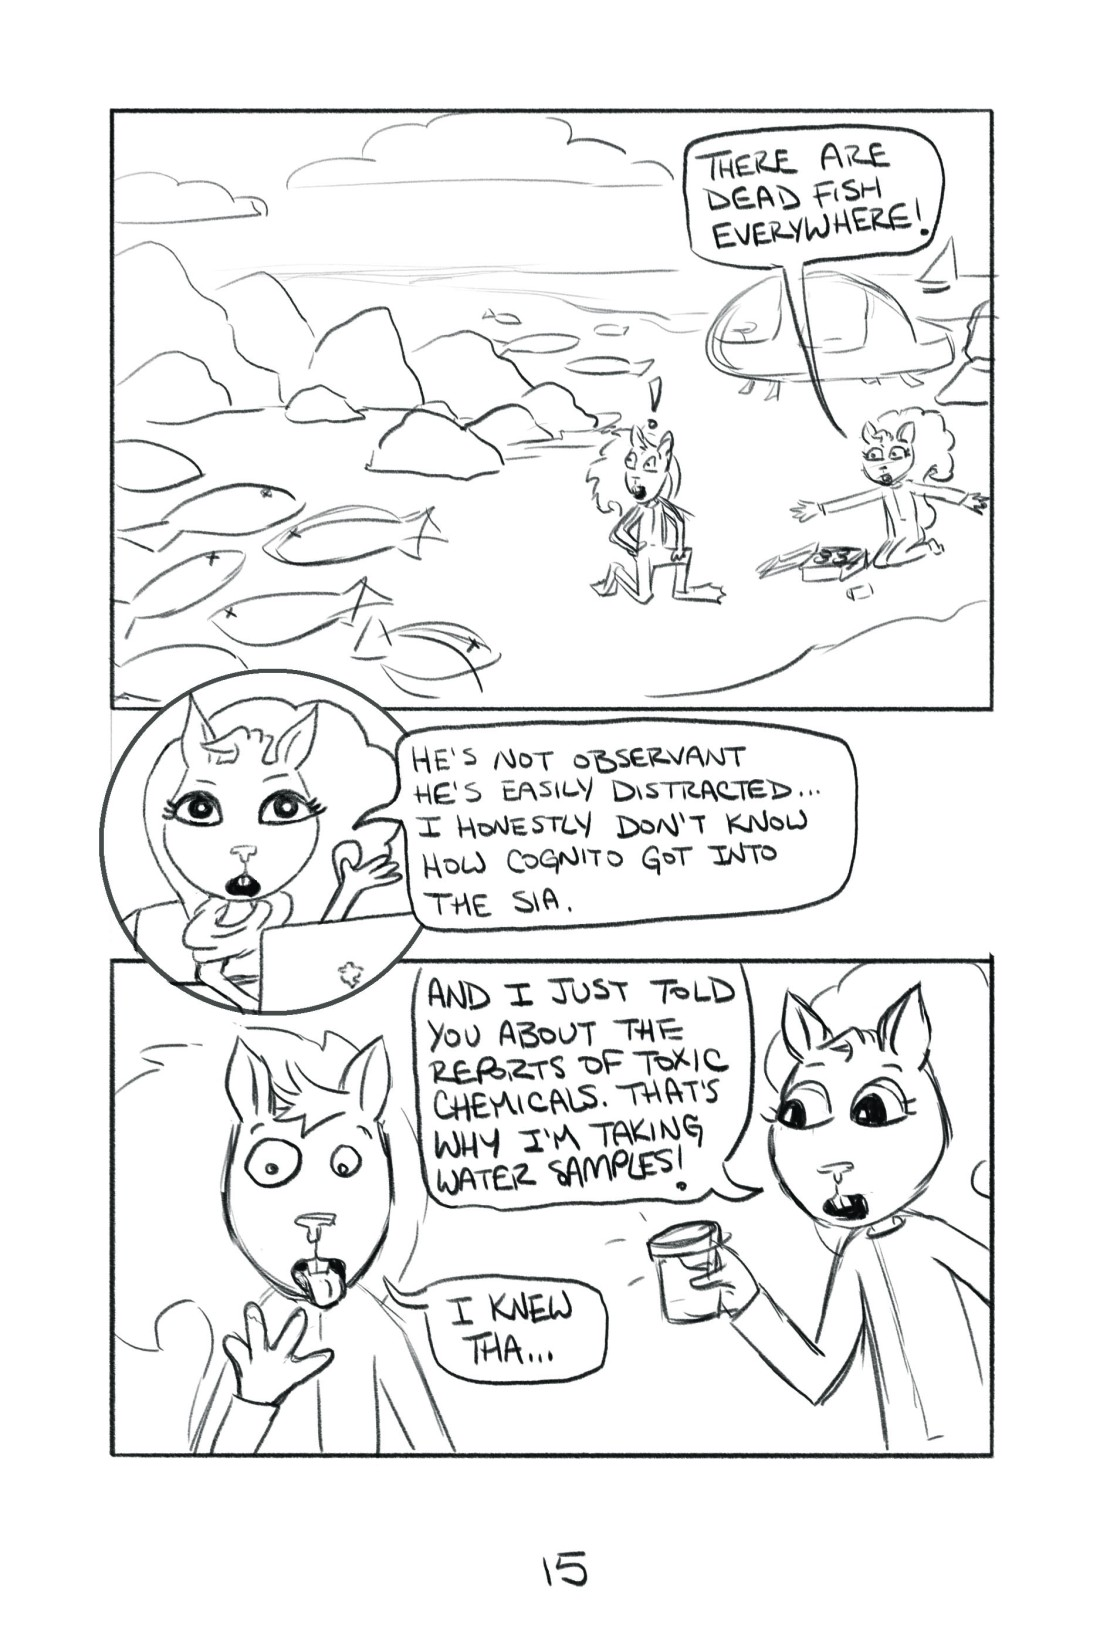 Cognito Sanchez_Page 15 by Sheri Roloff